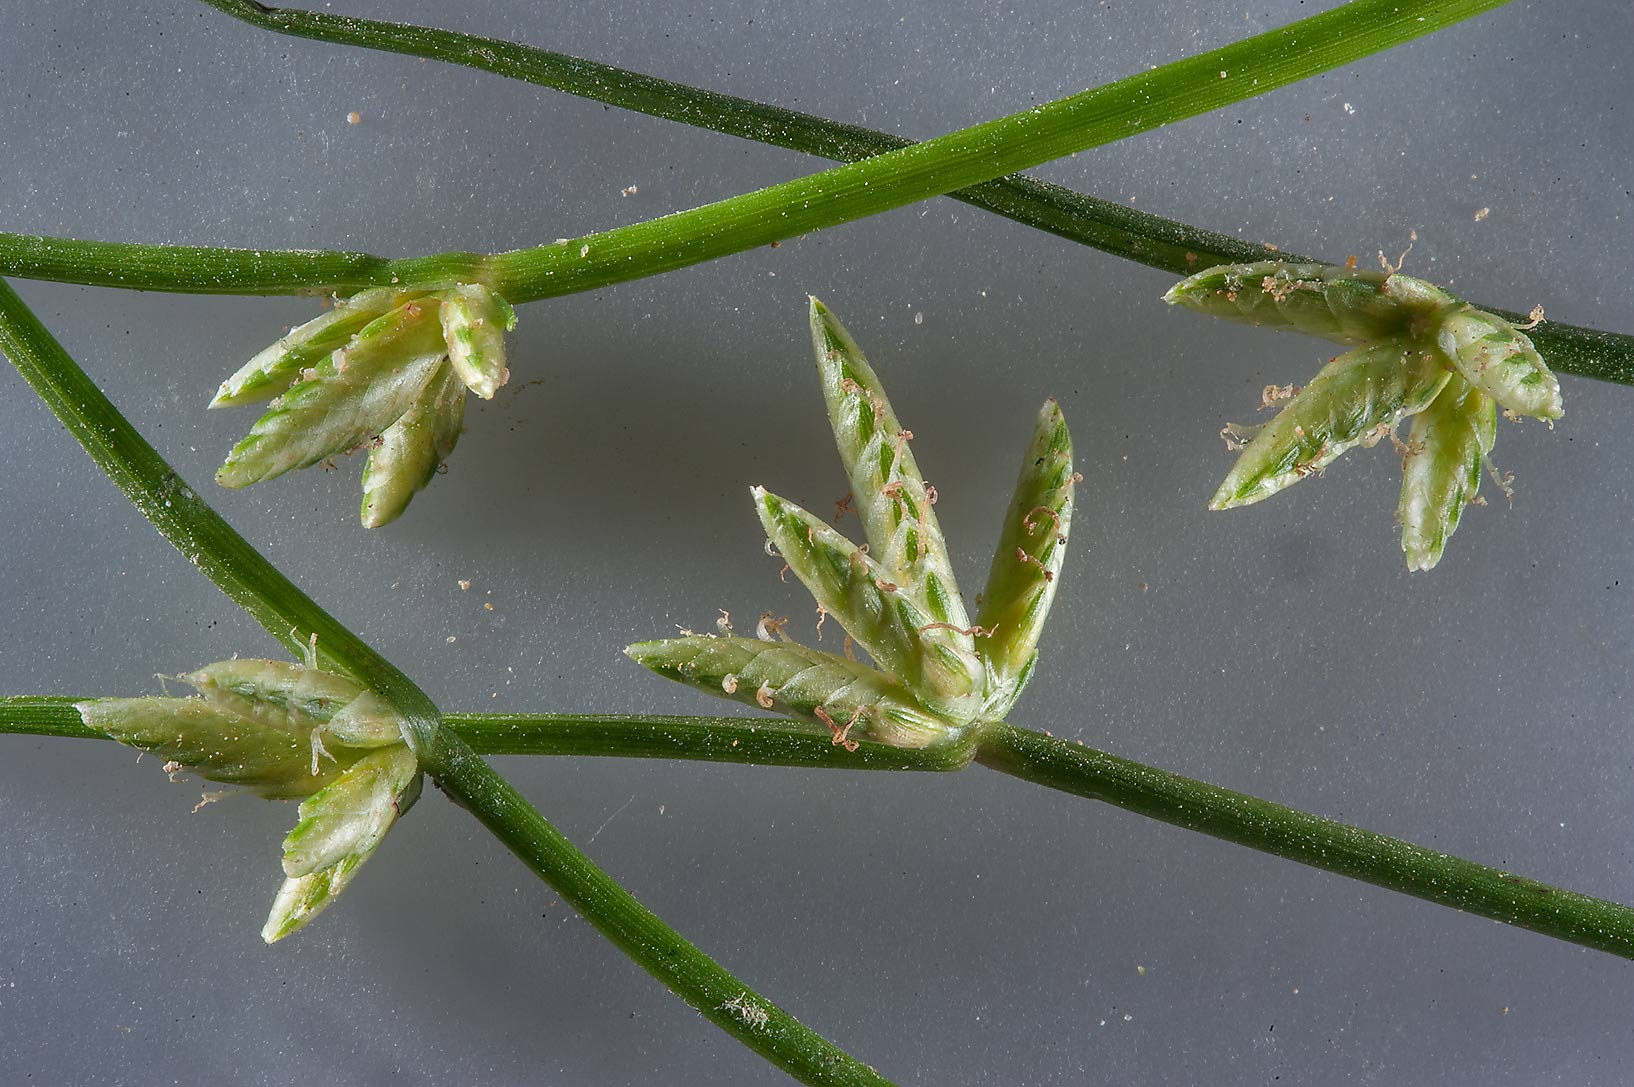 Compact heads with spikelets growing sideways of...Reserve near Abu Samra. Southern Qatar